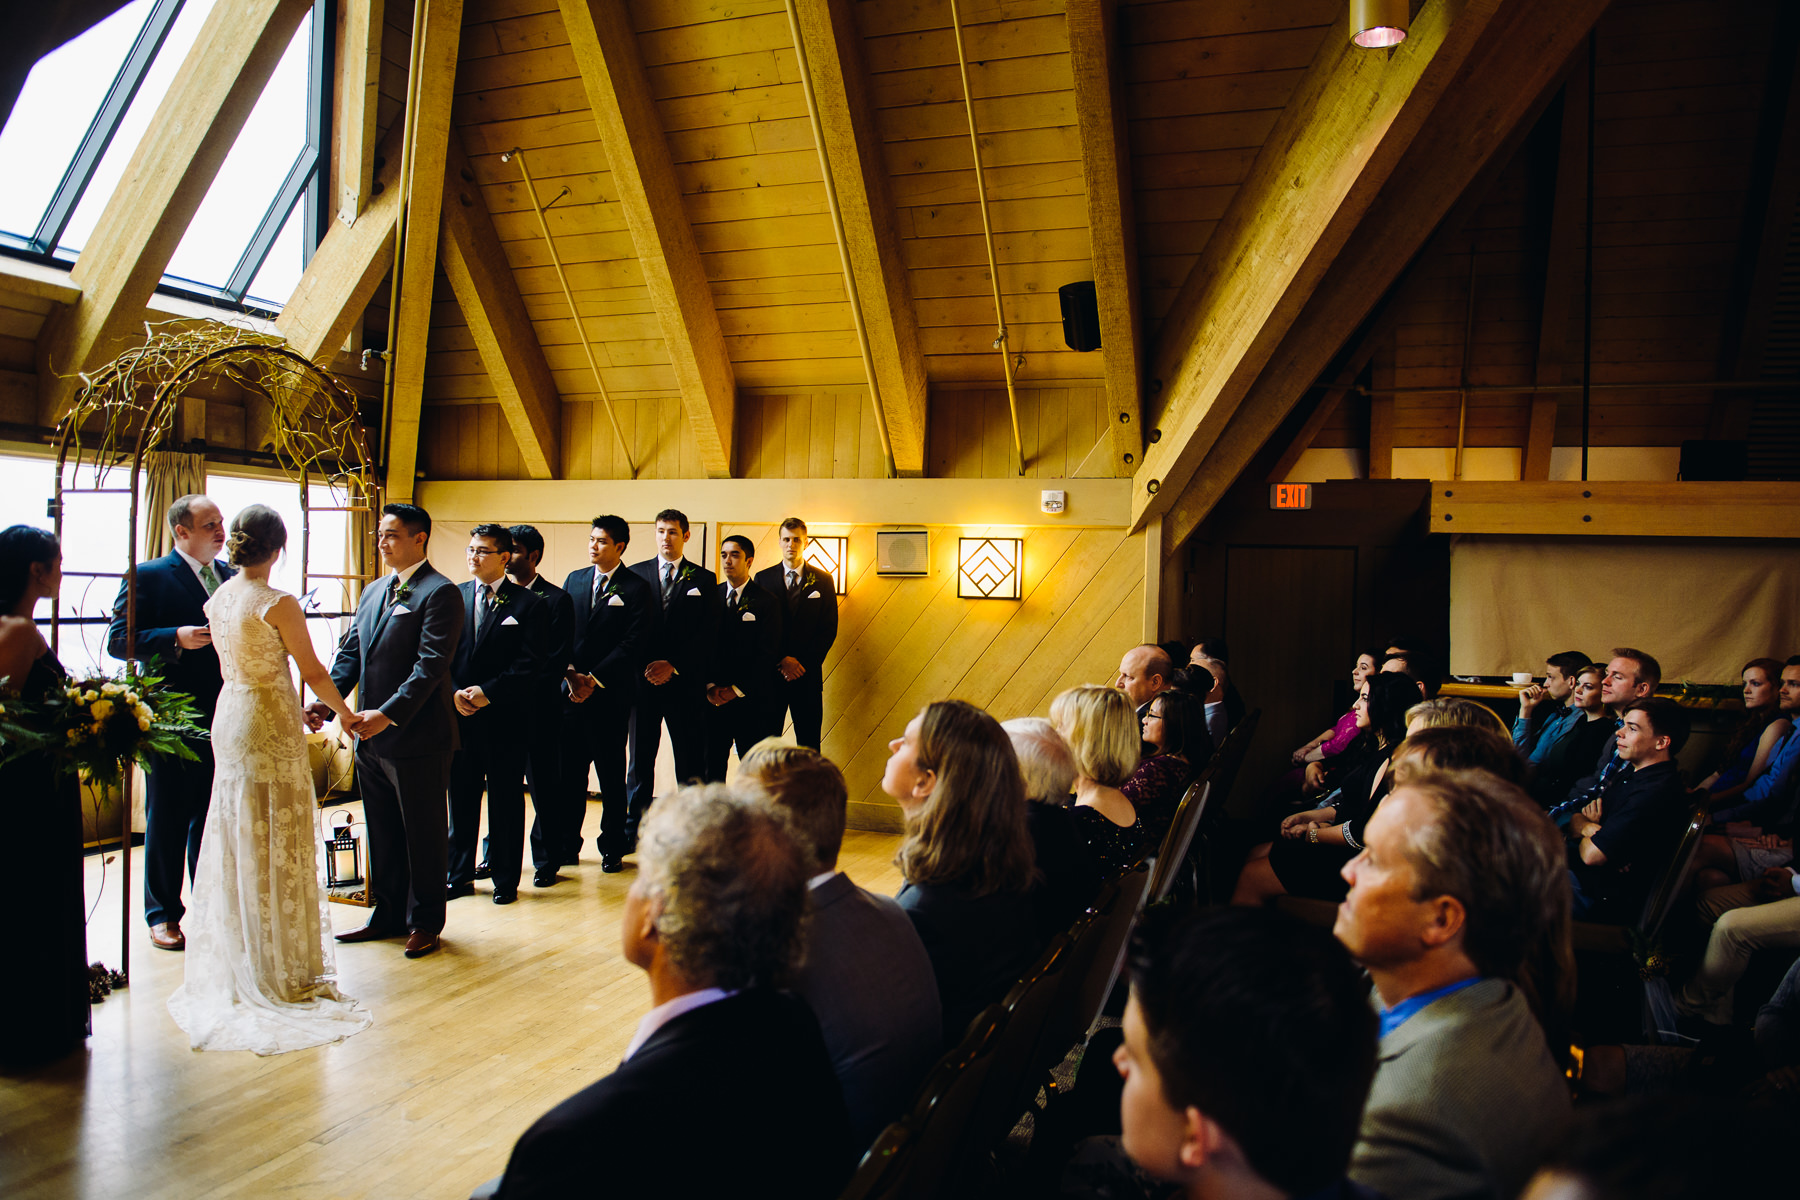 timberline-lodge-wedding-photos-13